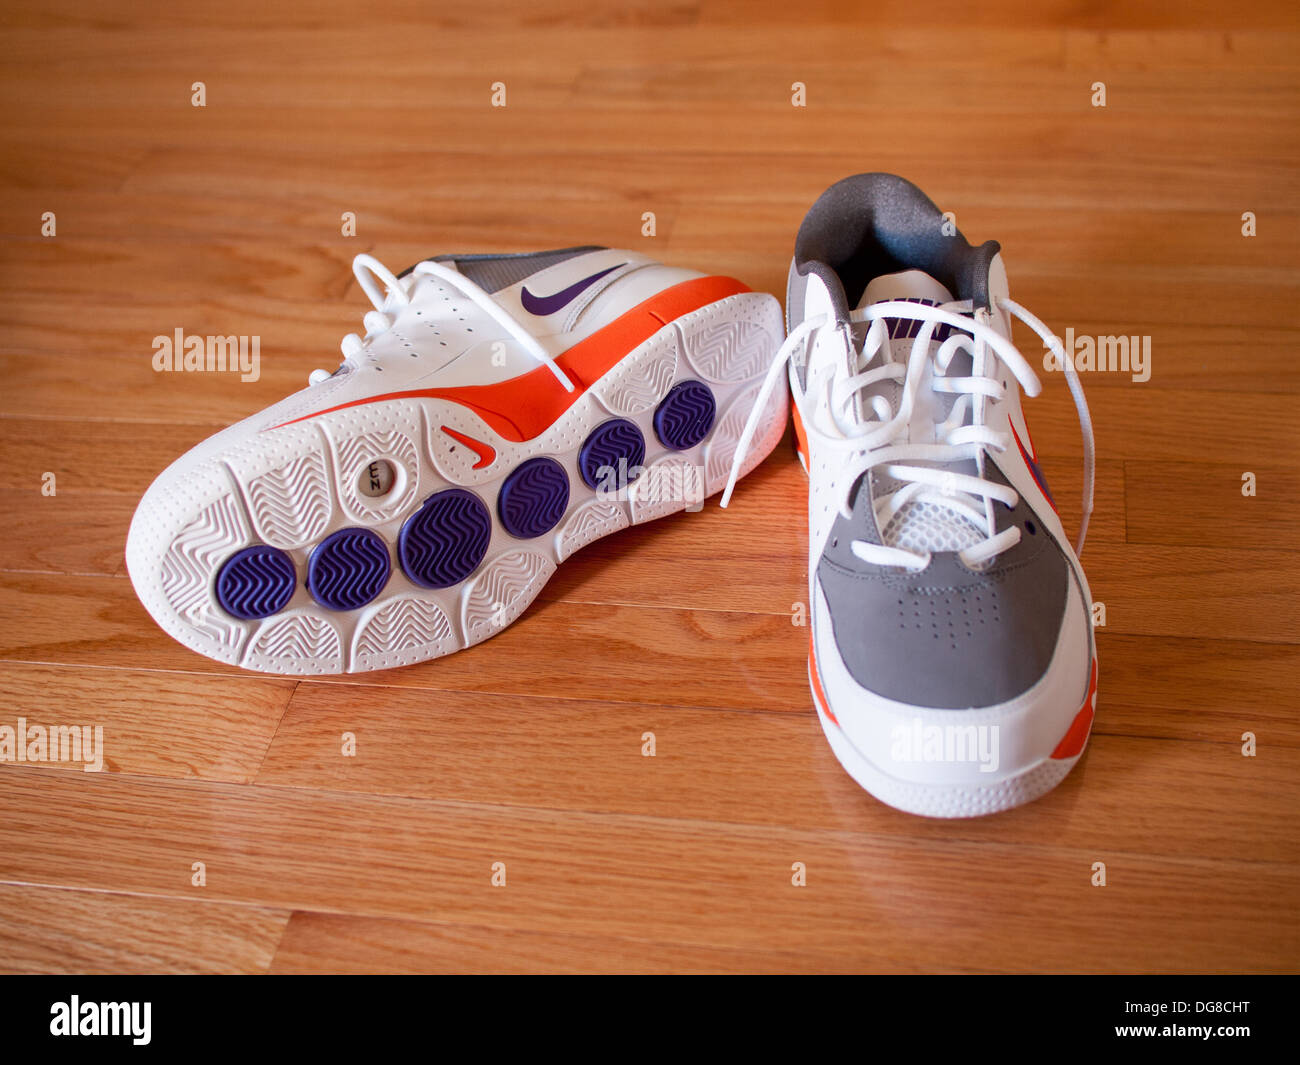 Images Alamy And Nike Photos amp; Basketball aSw4xqU0